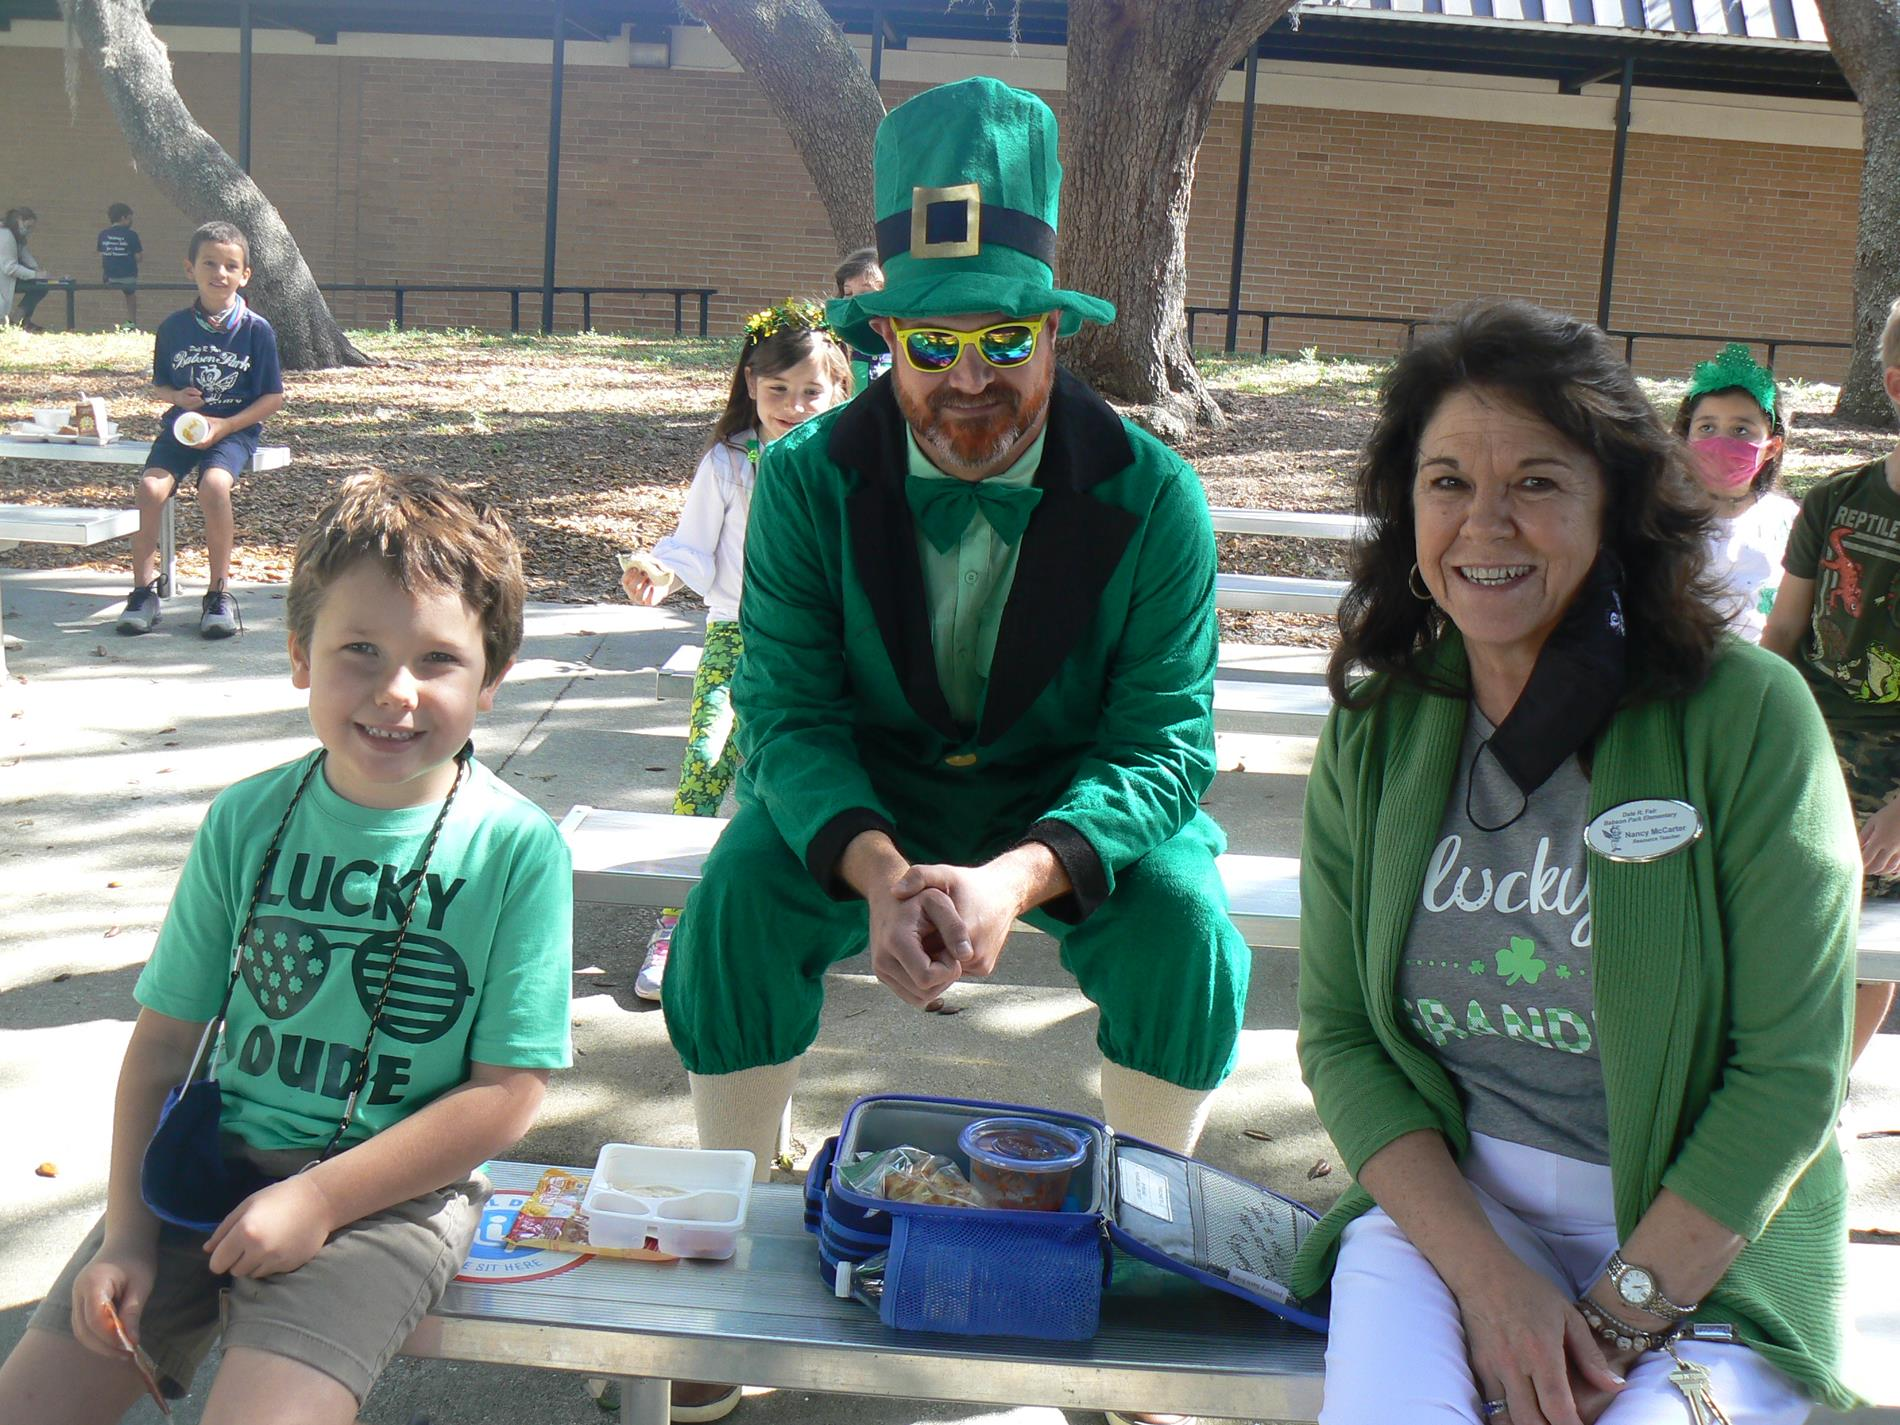 Students were visited by the leprechaun during lunch.